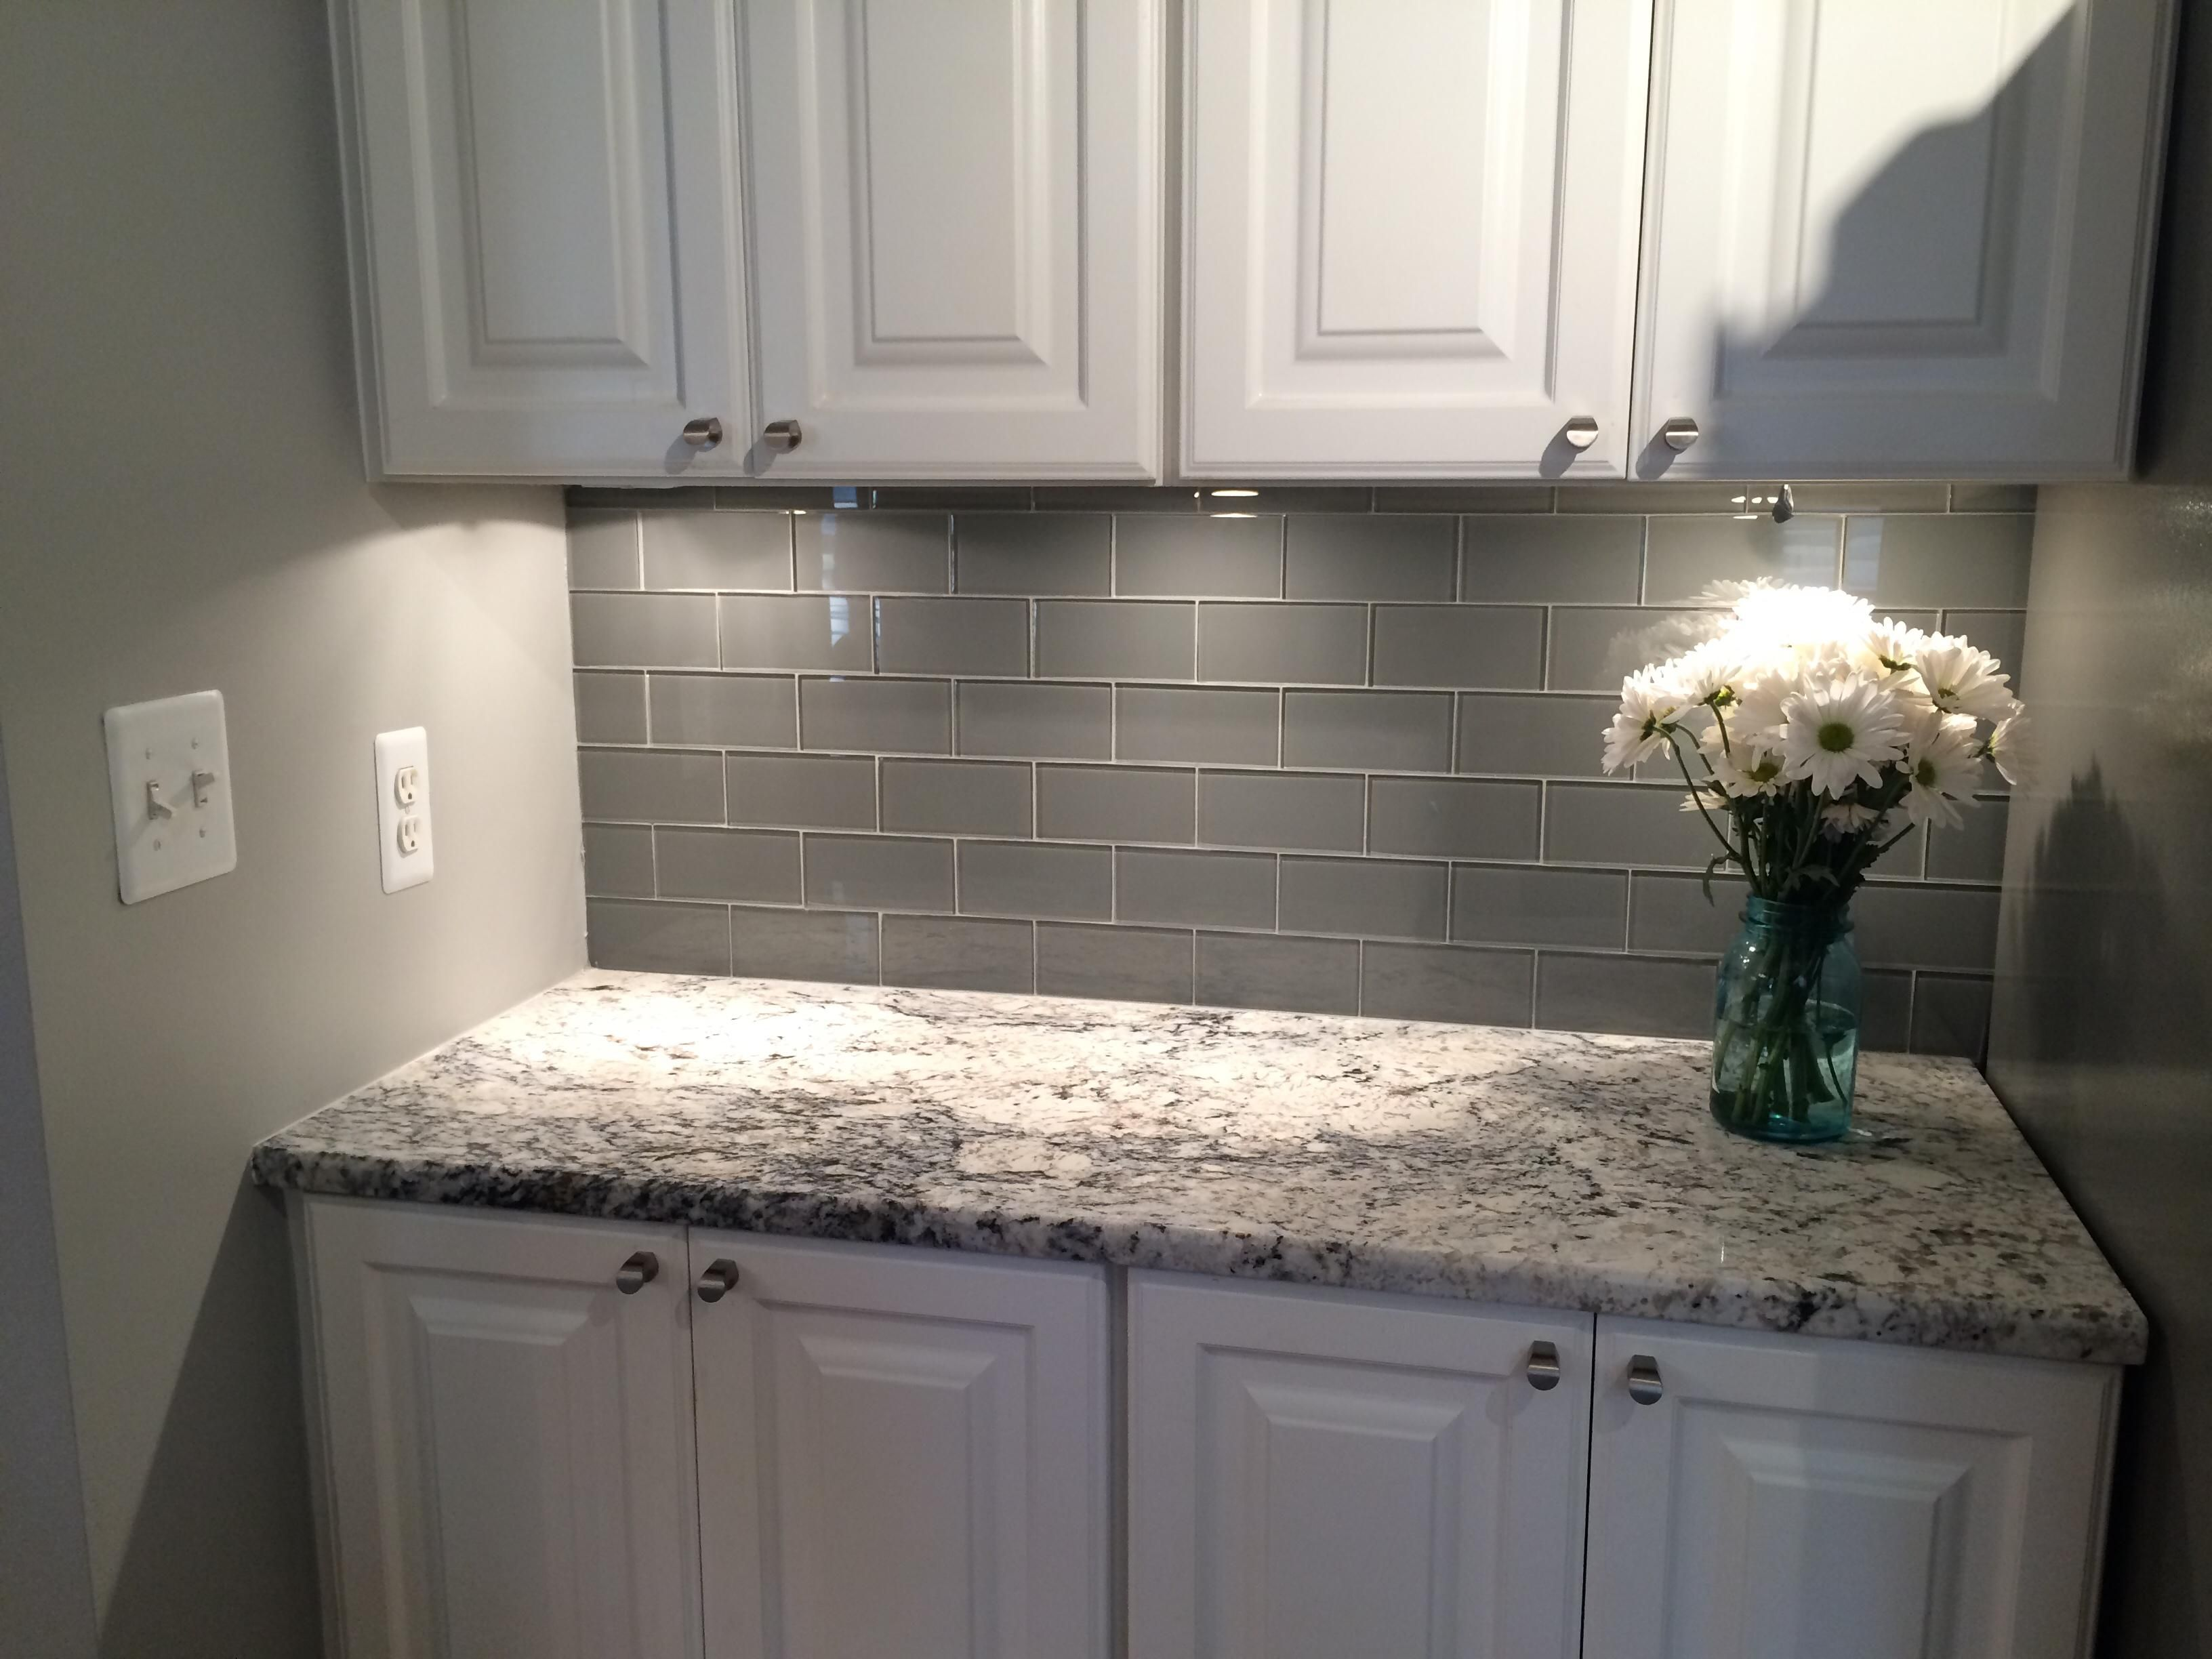 - White Tile Backsplash Kitchen #3 - White Subway Tile Backsplash